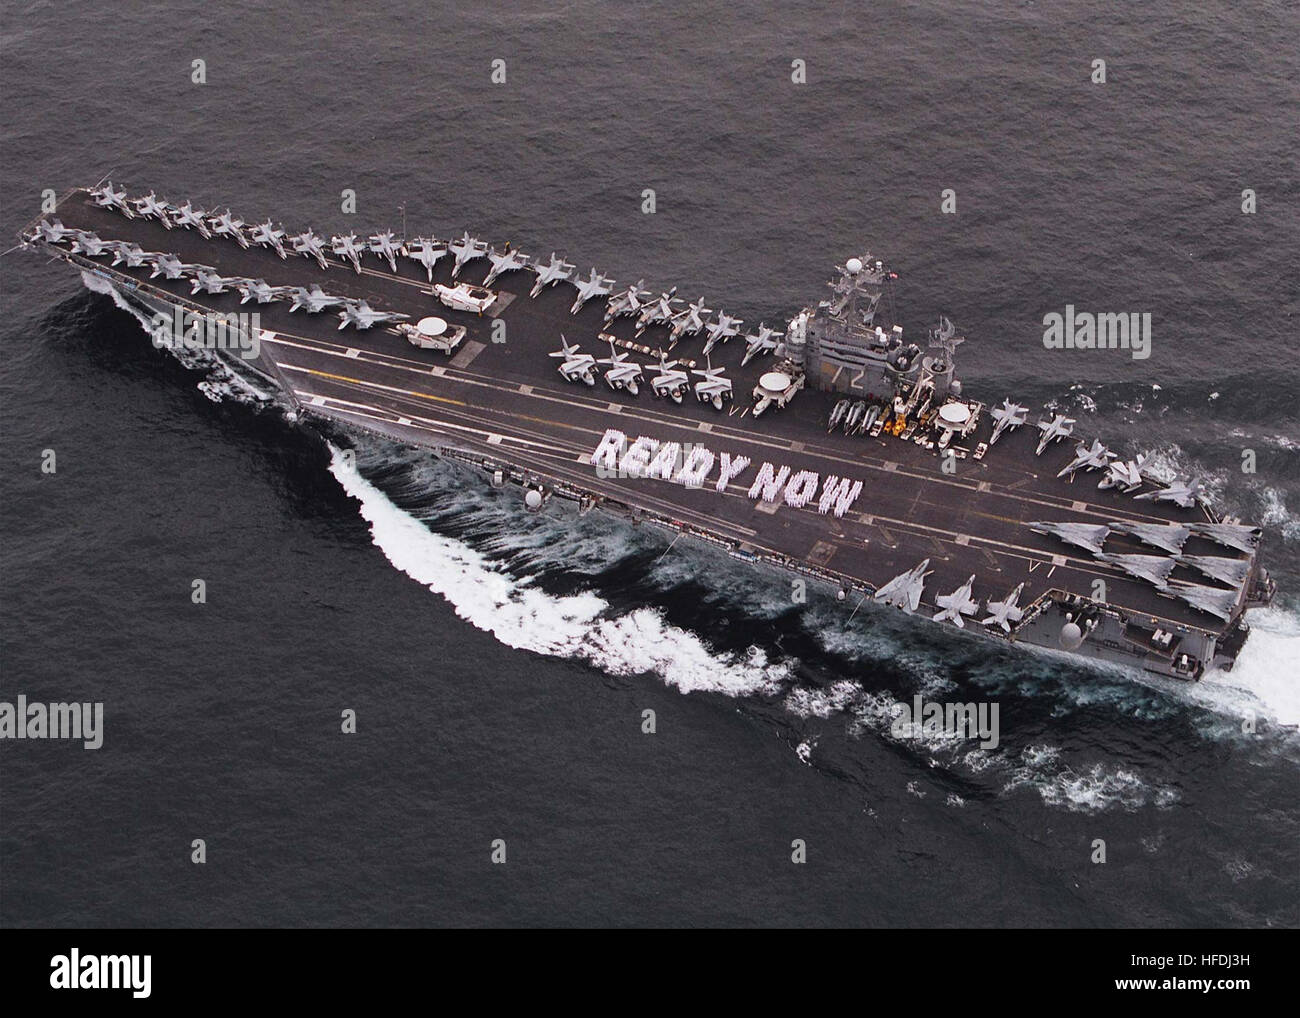 020911-N-3241S-004 At sea aboard USS Abraham Lincoln (CVN 72) Sep. 11, 2002 -- In response to the President's - Stock Image